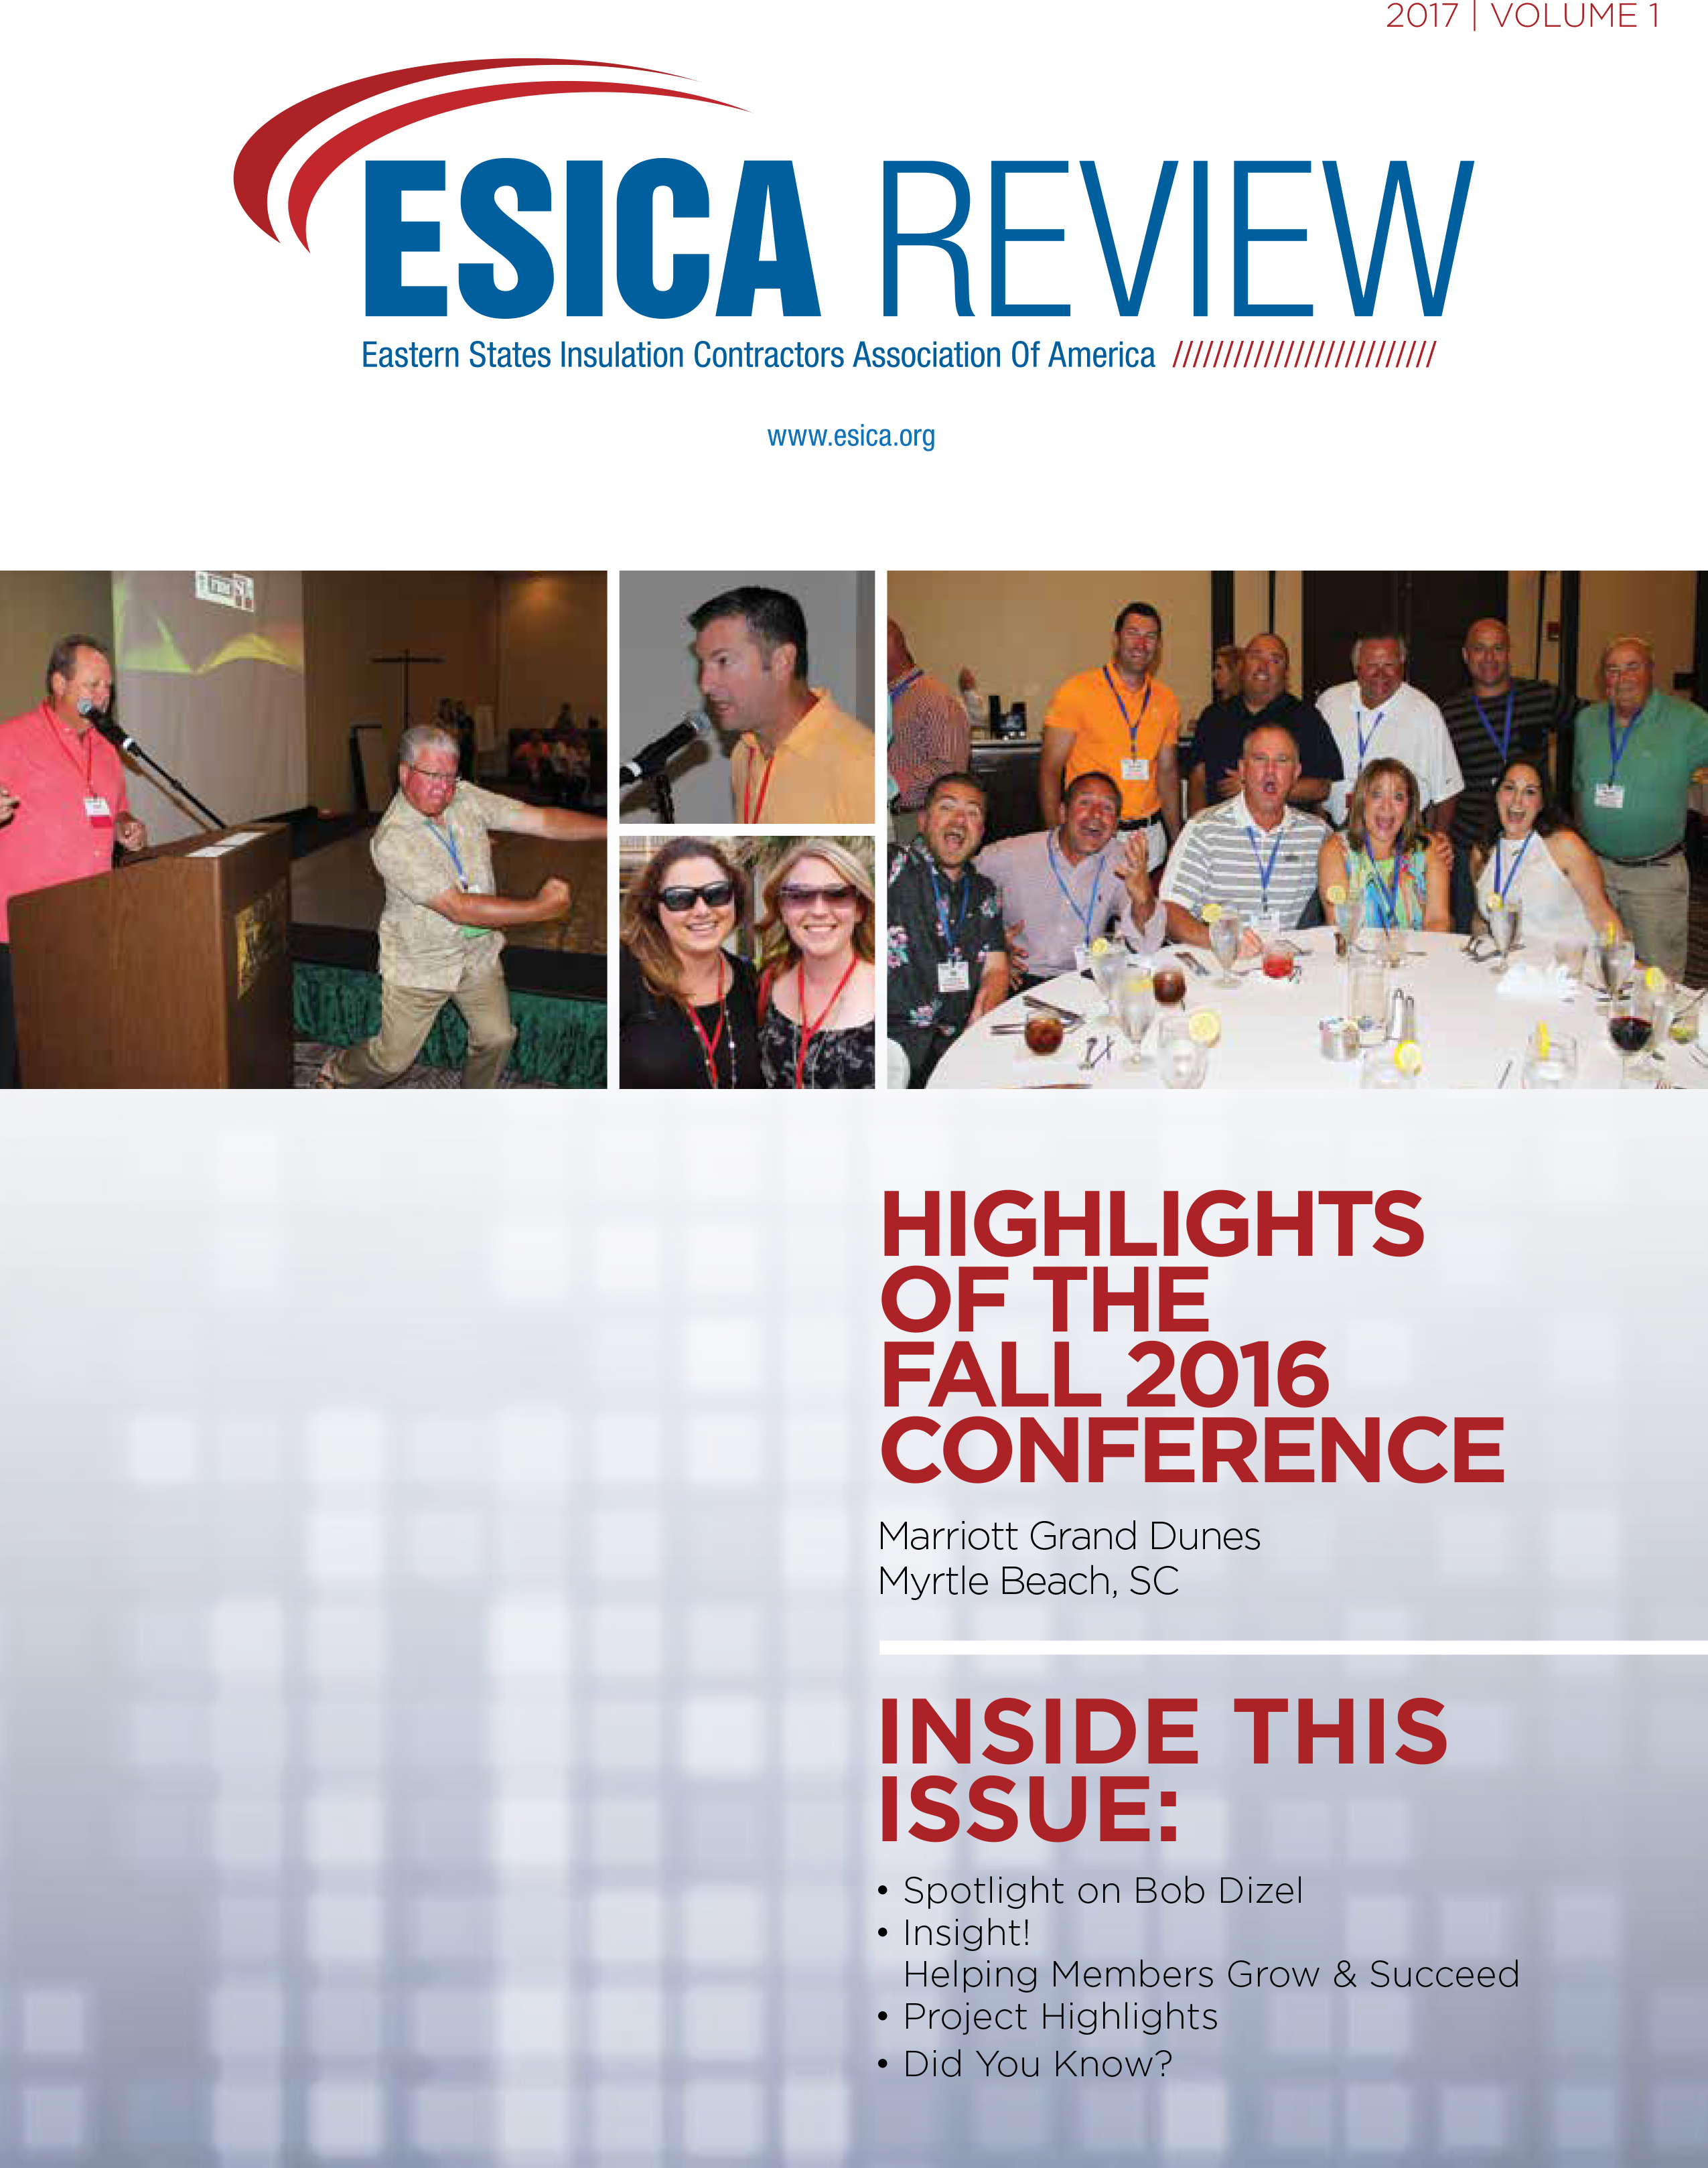 ESICA Review 2017 Volume 1